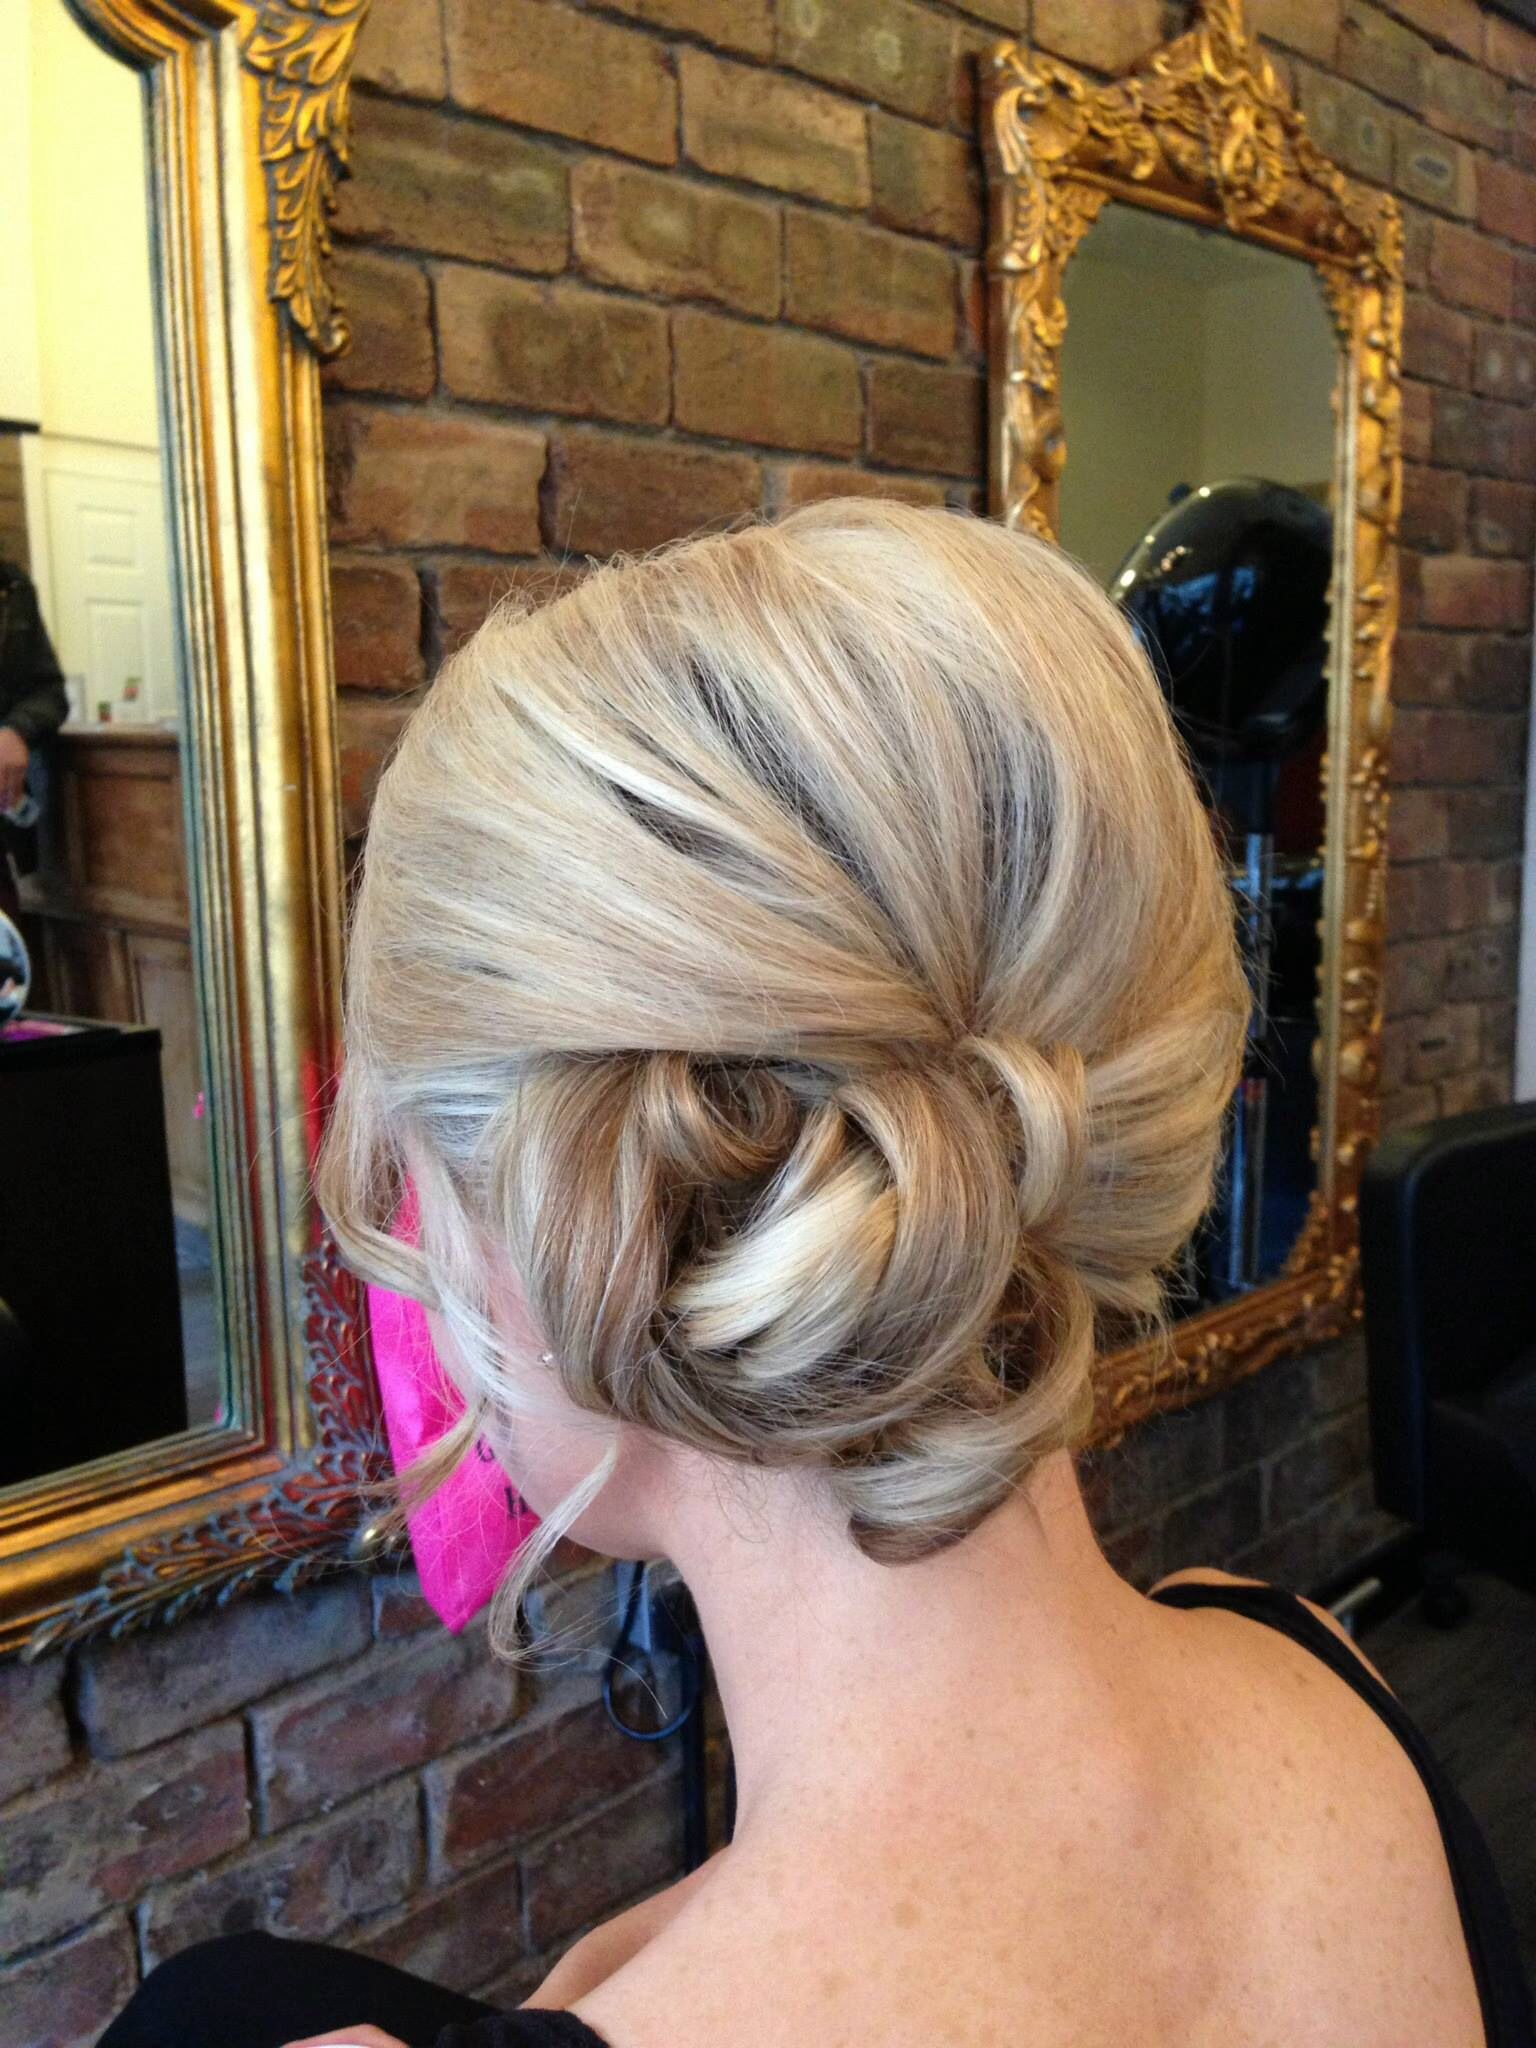 Hair and make up by Miss Barton's salon  #glasgow #westend #hairupdo #hair #colour #prom #bridal #blonde